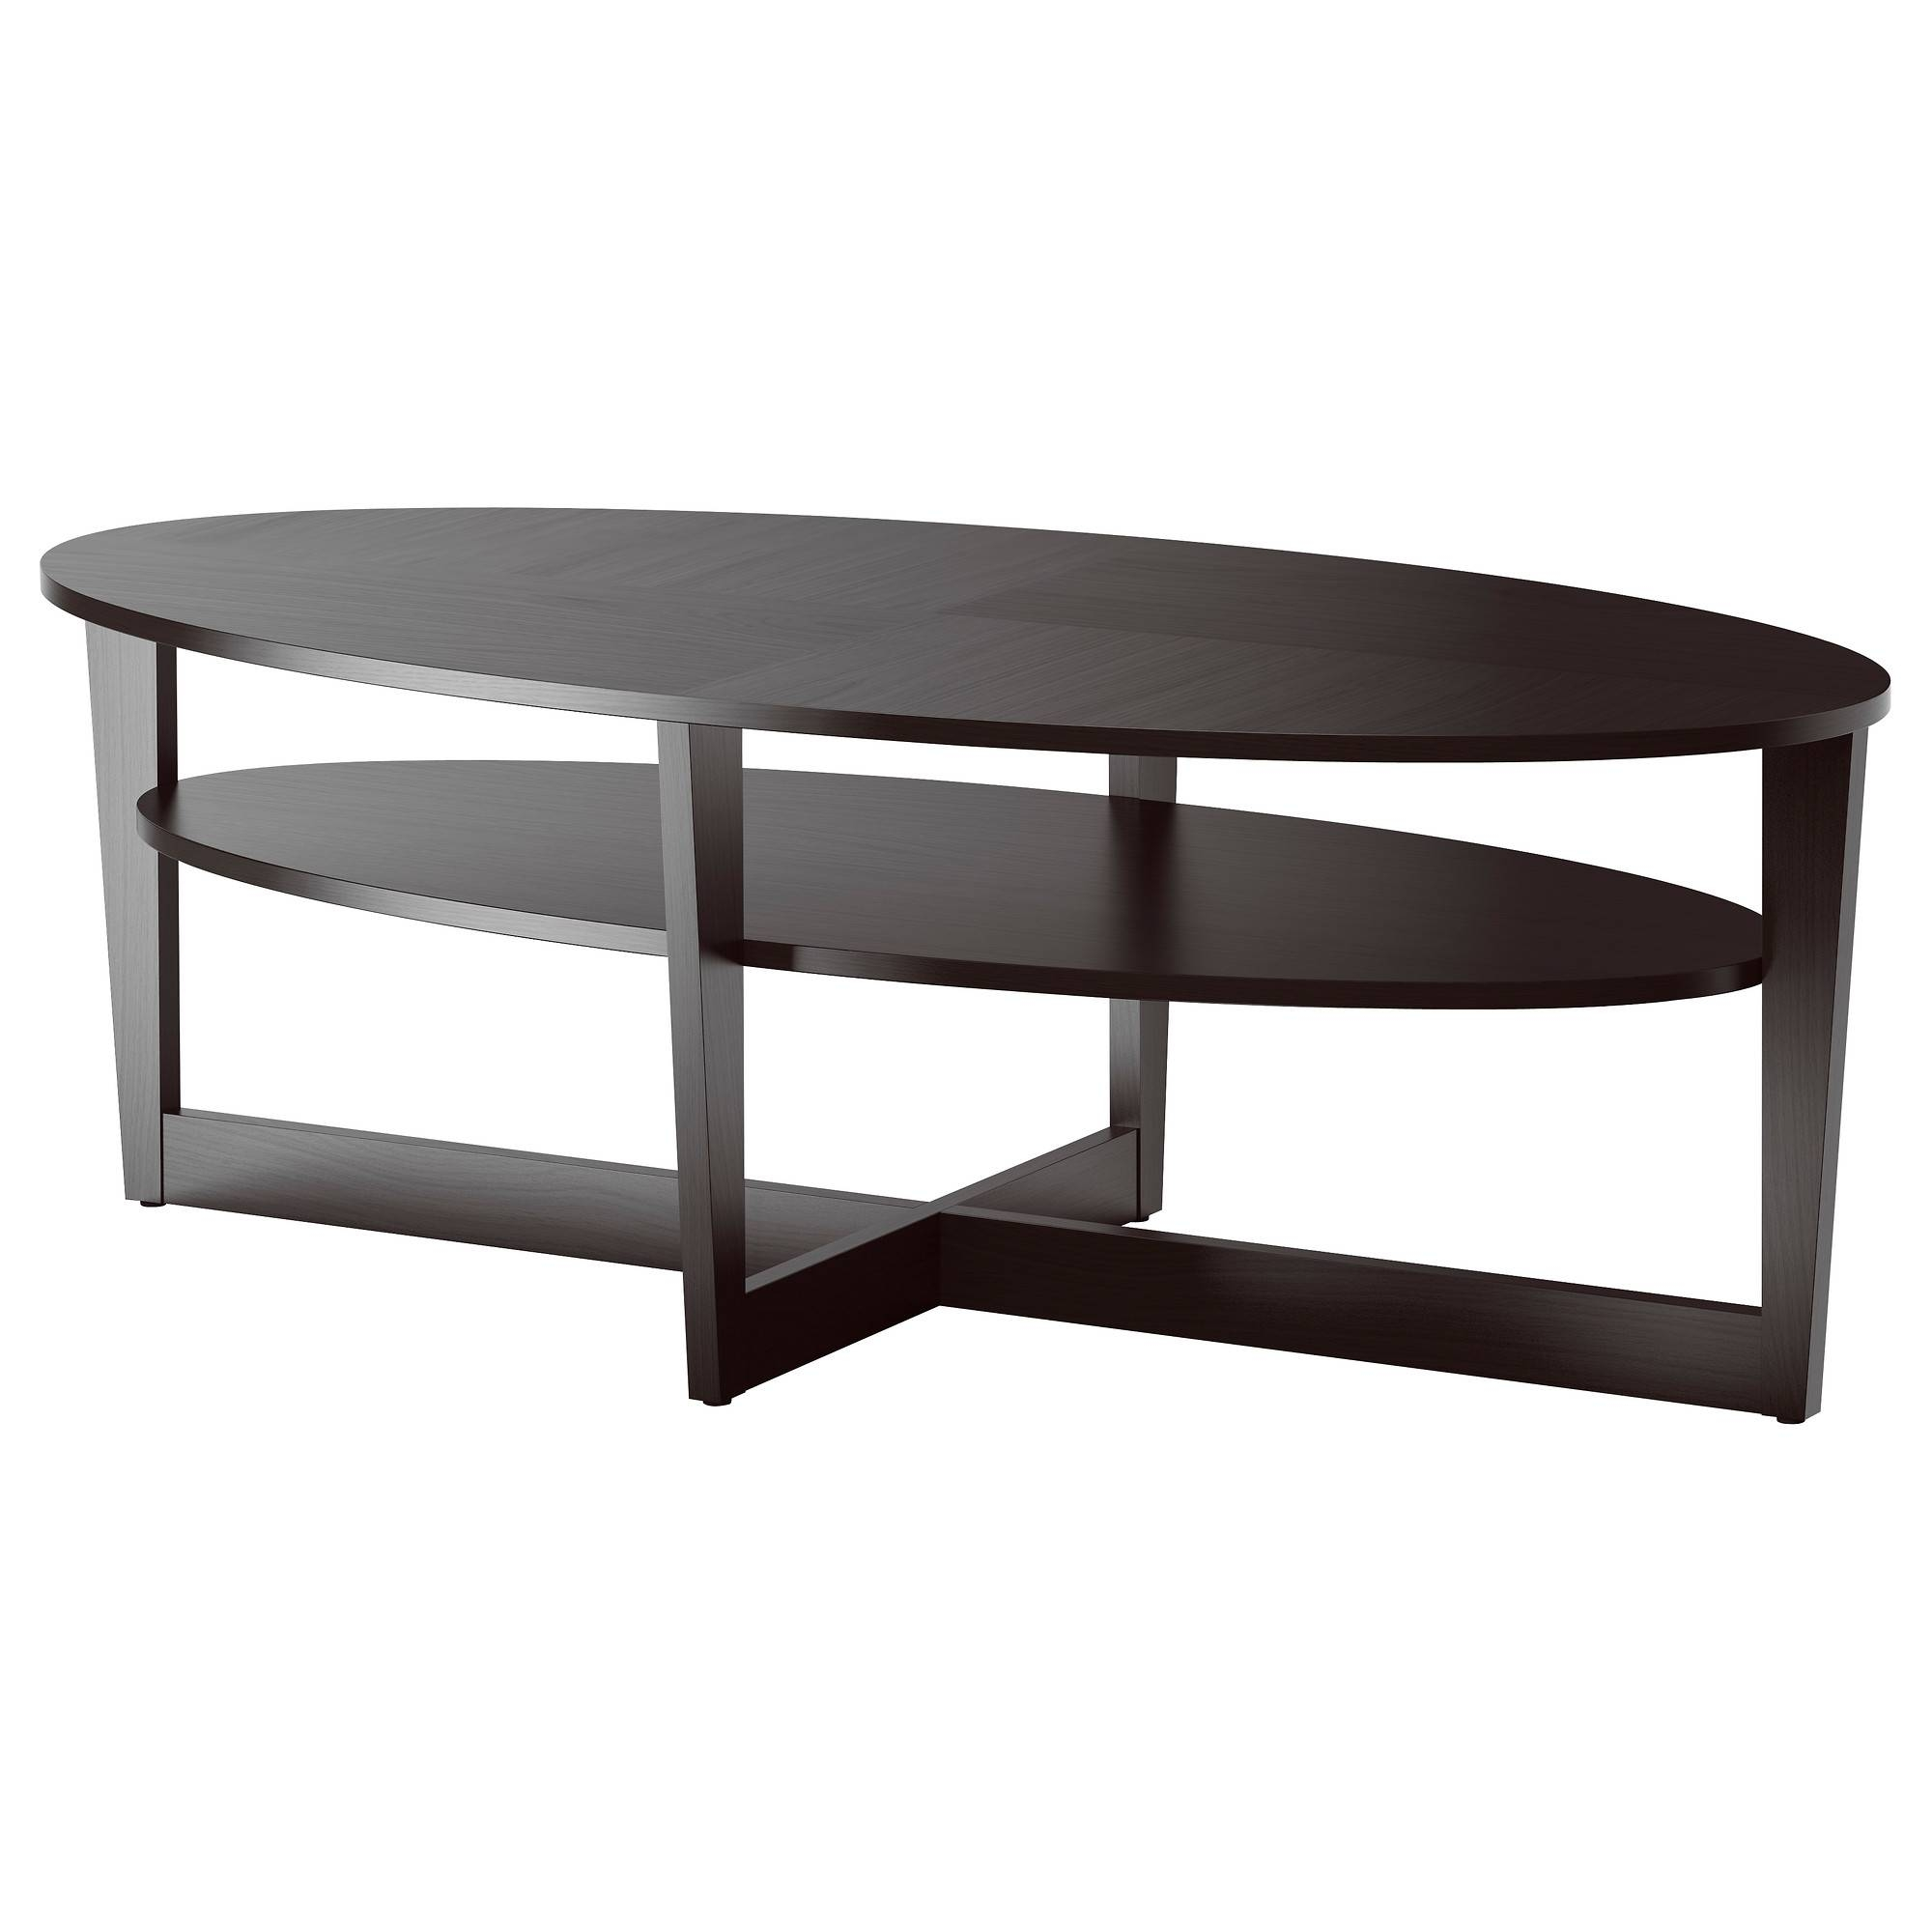 Vejmon Coffee Table - White - Ikea pertaining to Black Oval Coffee Table (Image 30 of 30)